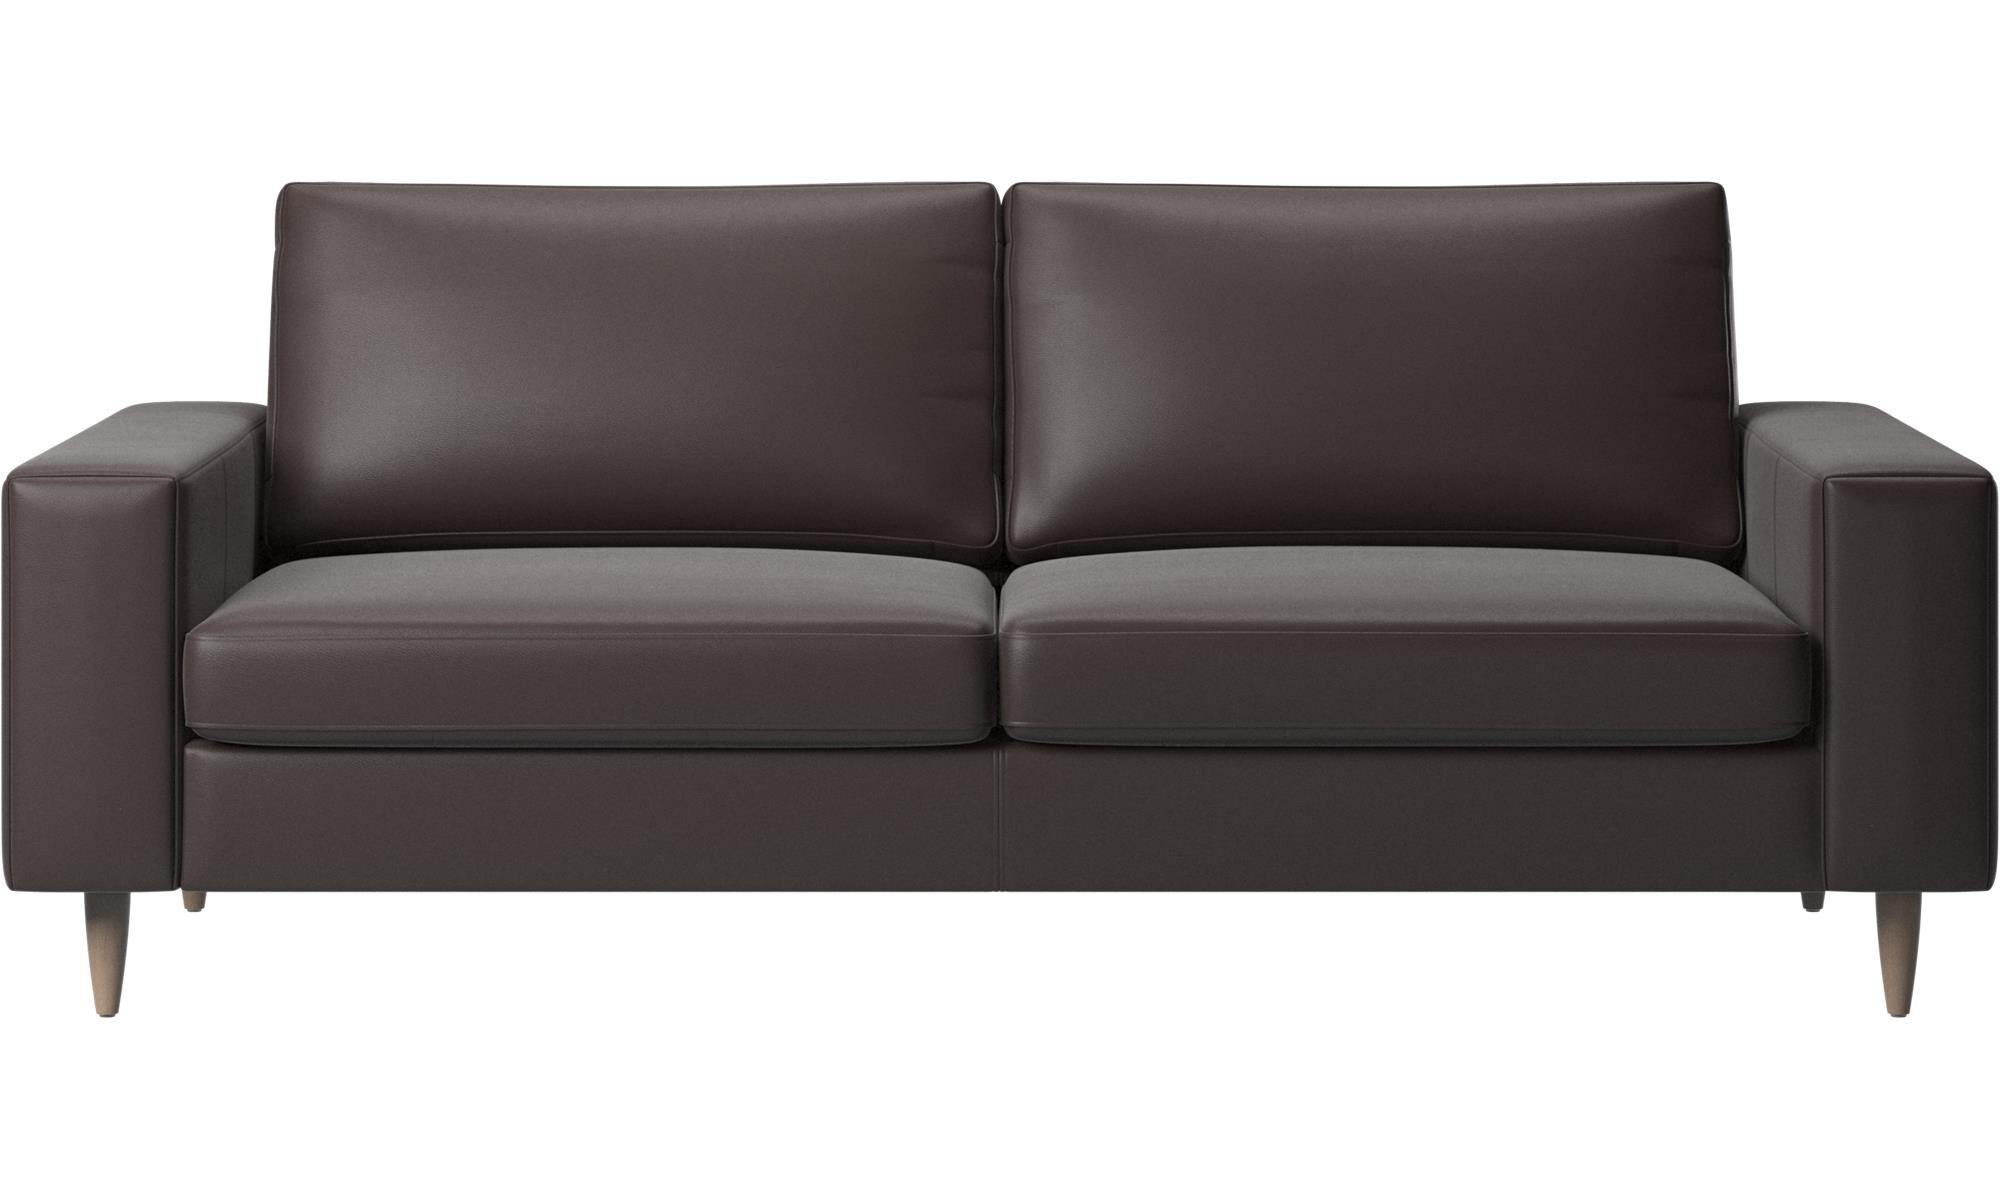 2.5 Seater Sofas   Indivi 2 Sofa   Brown   Leather